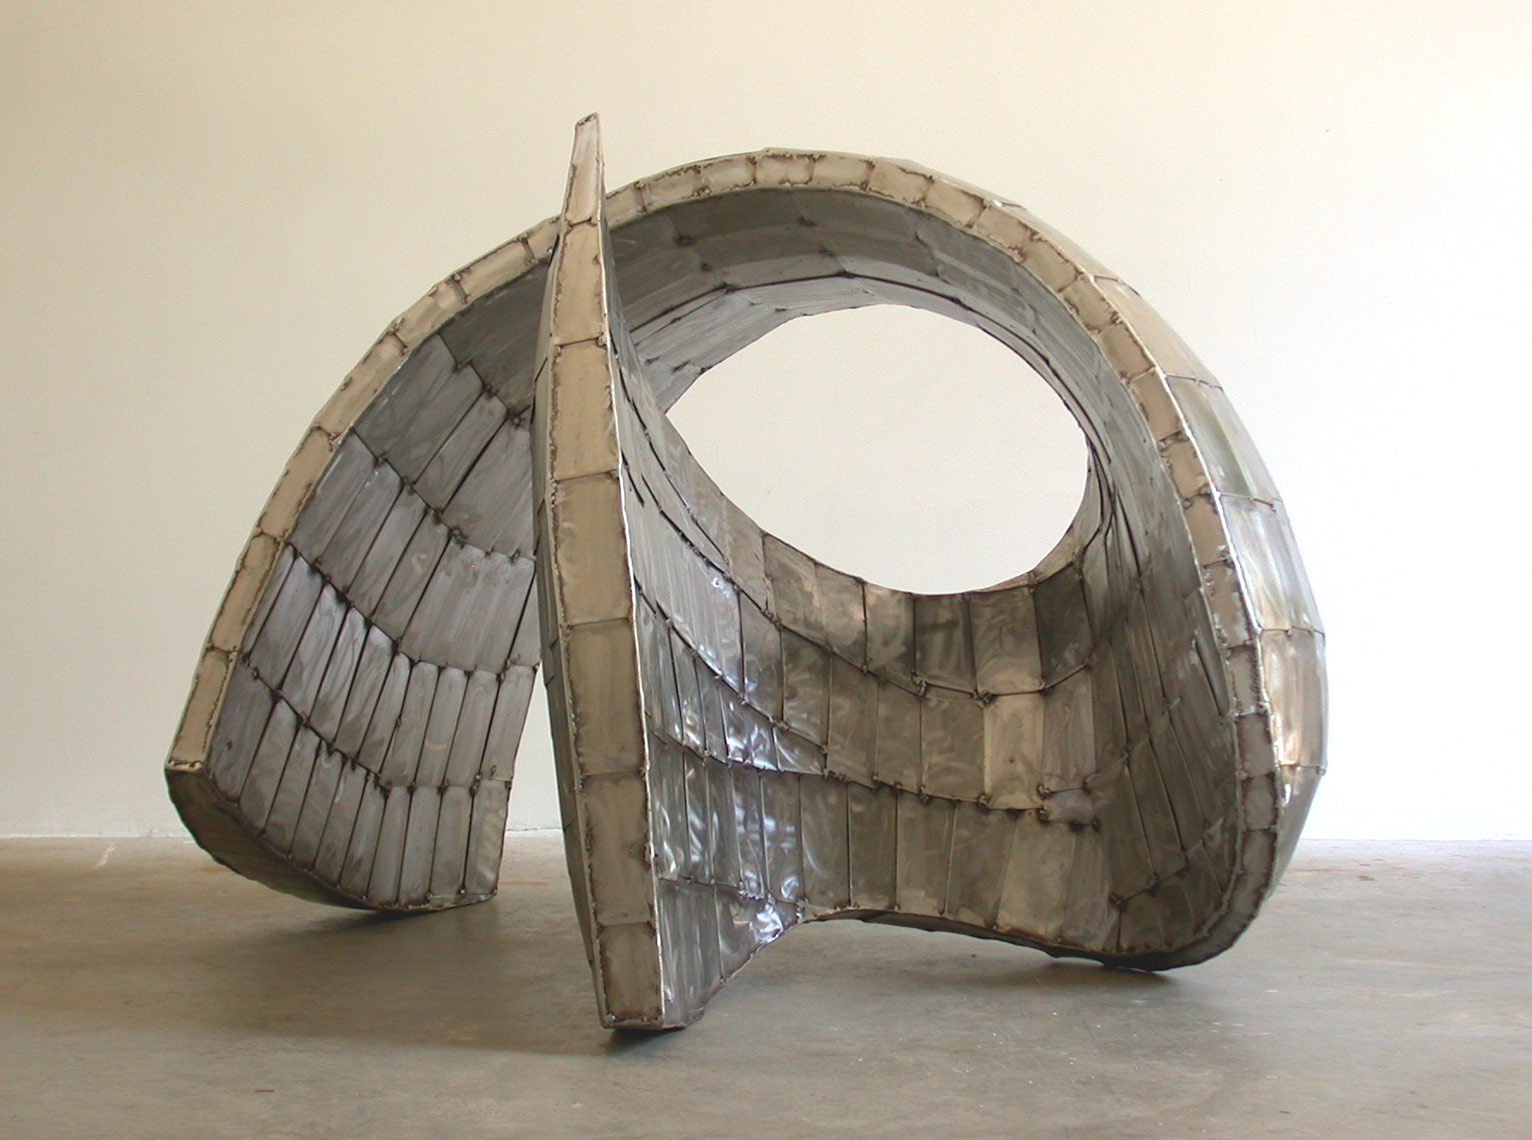 Torsion II in stainless steel by Peter Diepenbrock